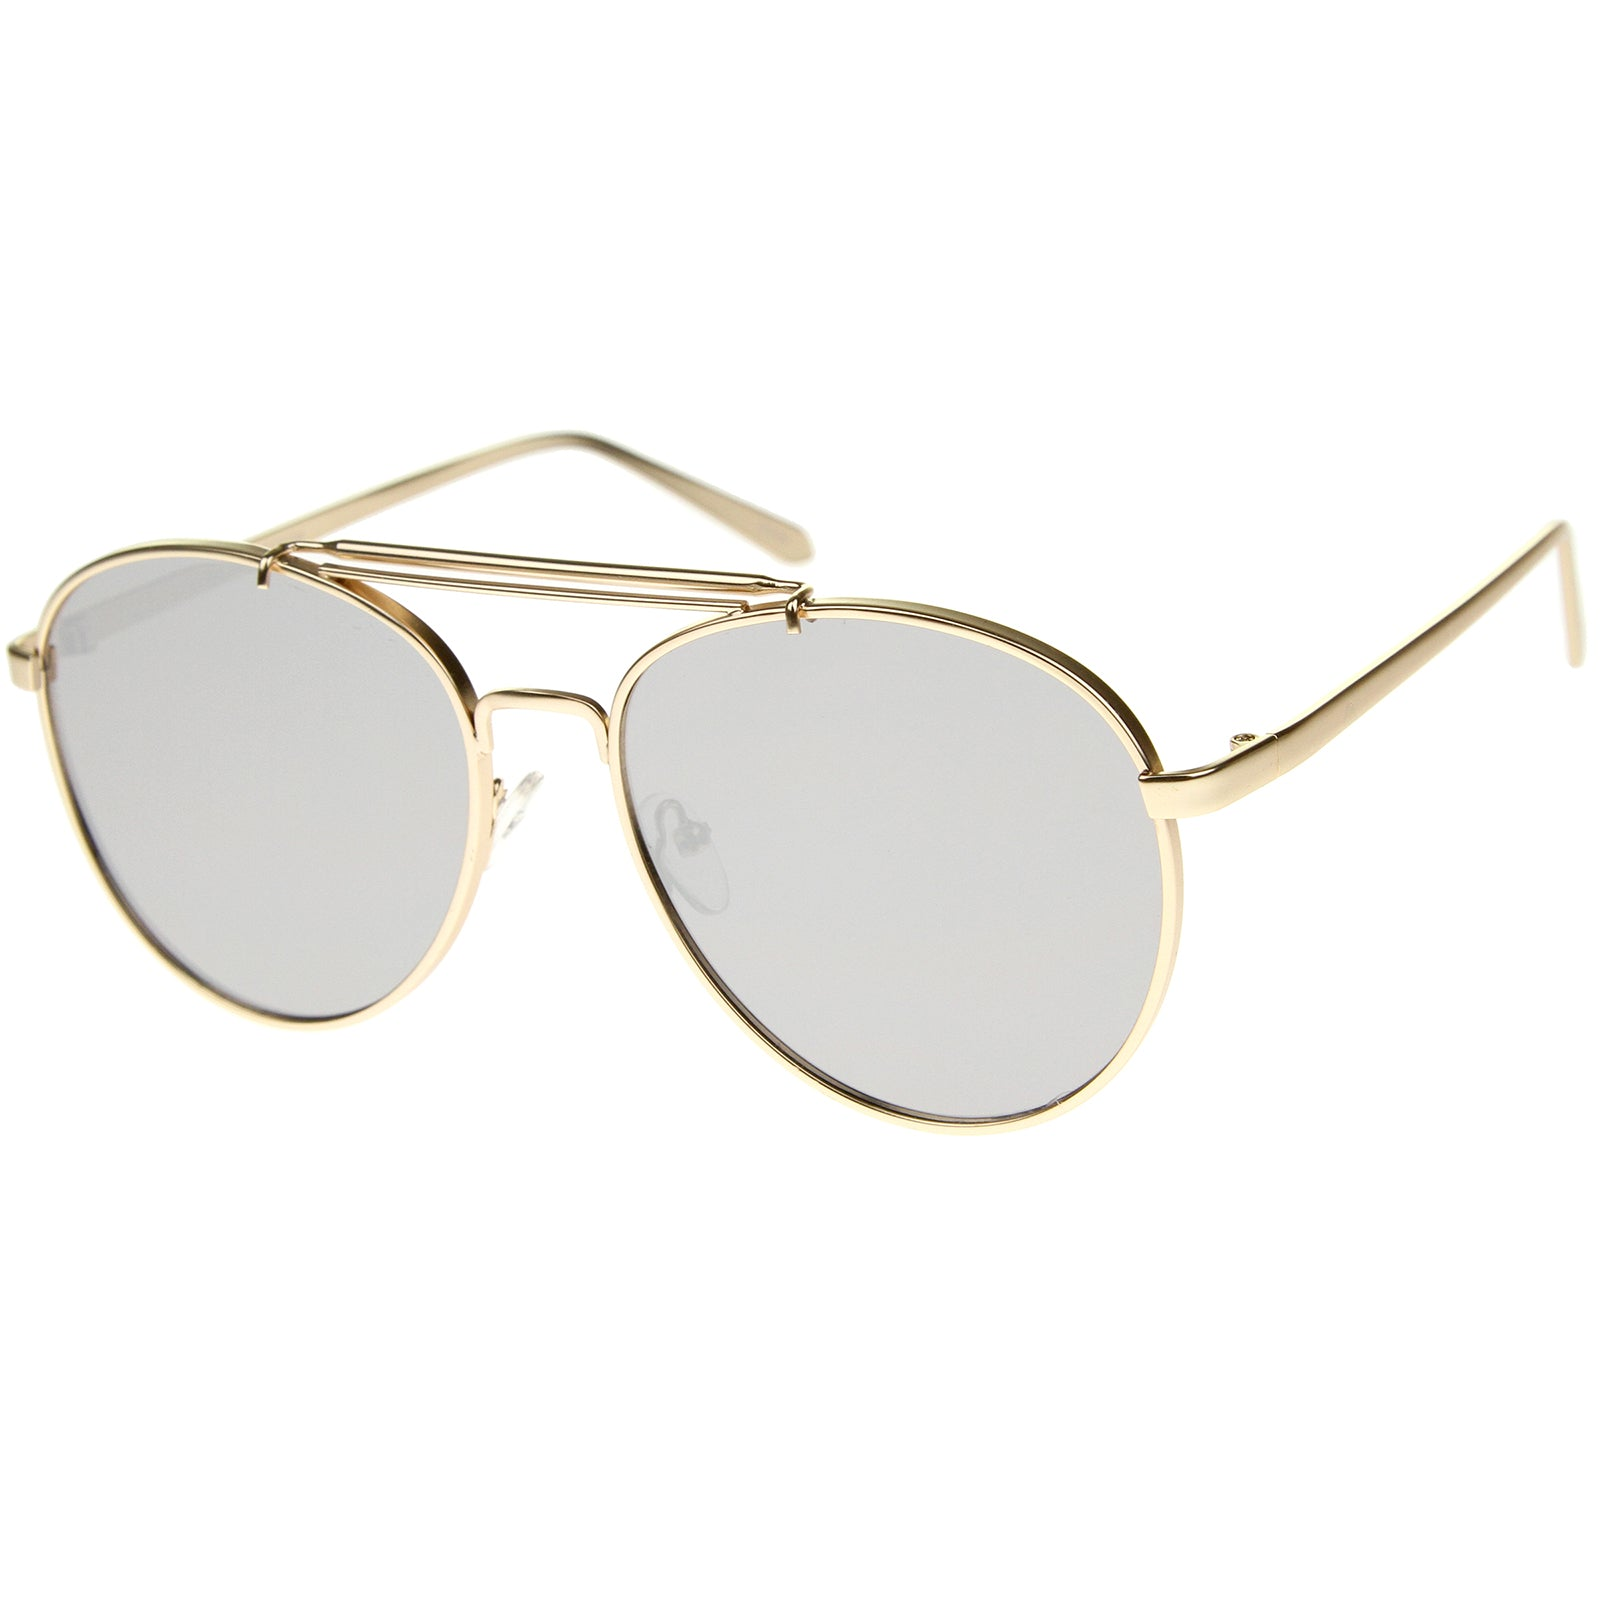 Large Metal Teardrop Double Bridge Mirrored Flat Lens Aviator Sunglasses 60mm - sunglass.la - 6